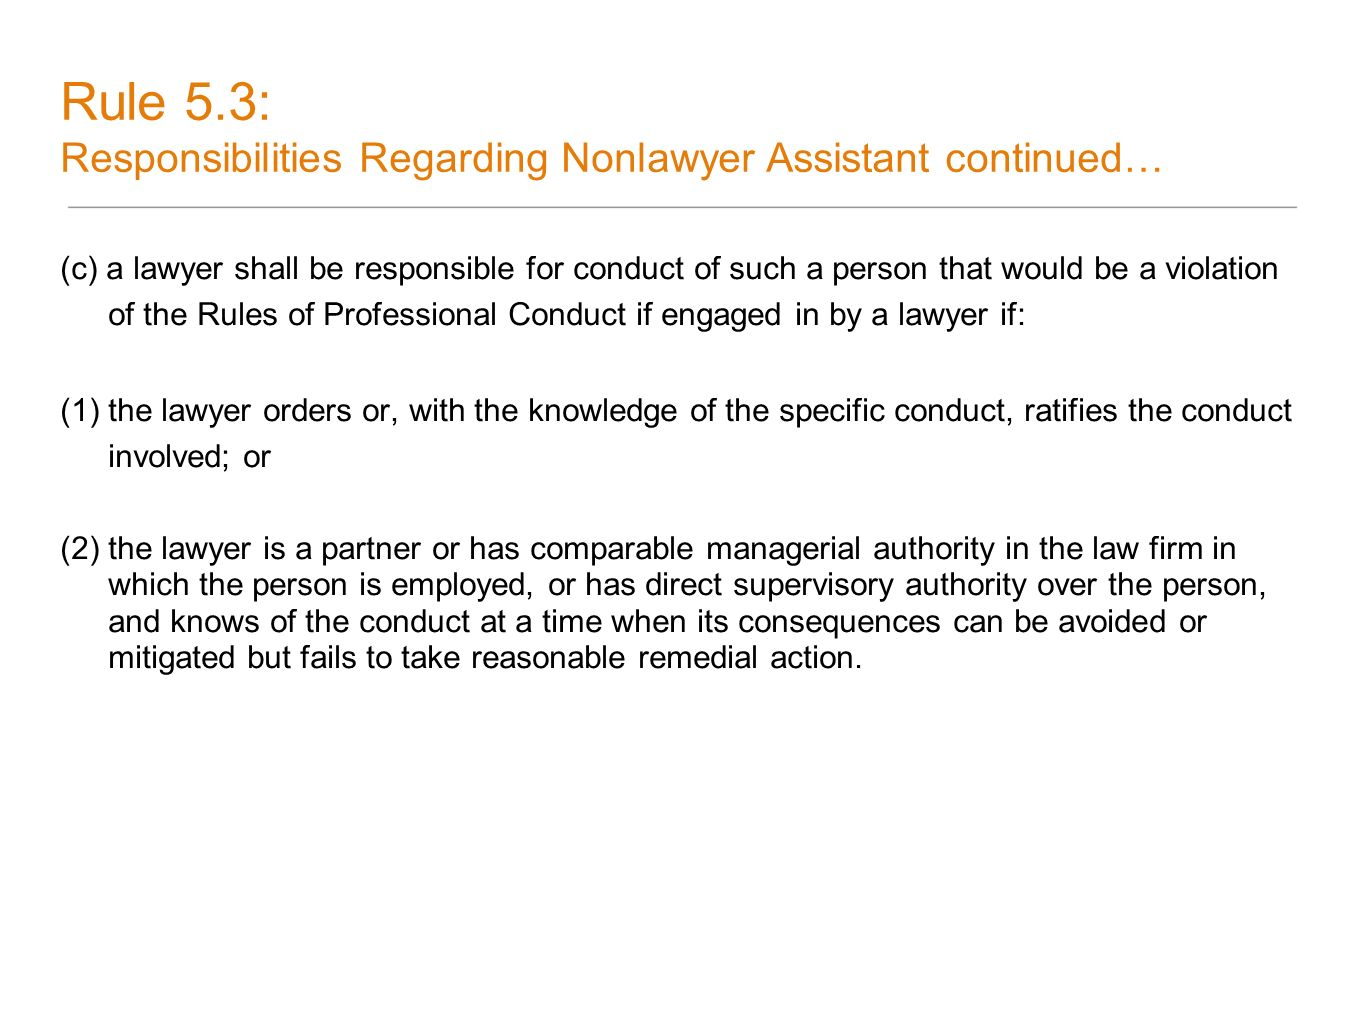 (c) a lawyer shall be responsible for conduct of such a person that would be a violation of the Rules of Professional Conduct if engaged in by a lawye